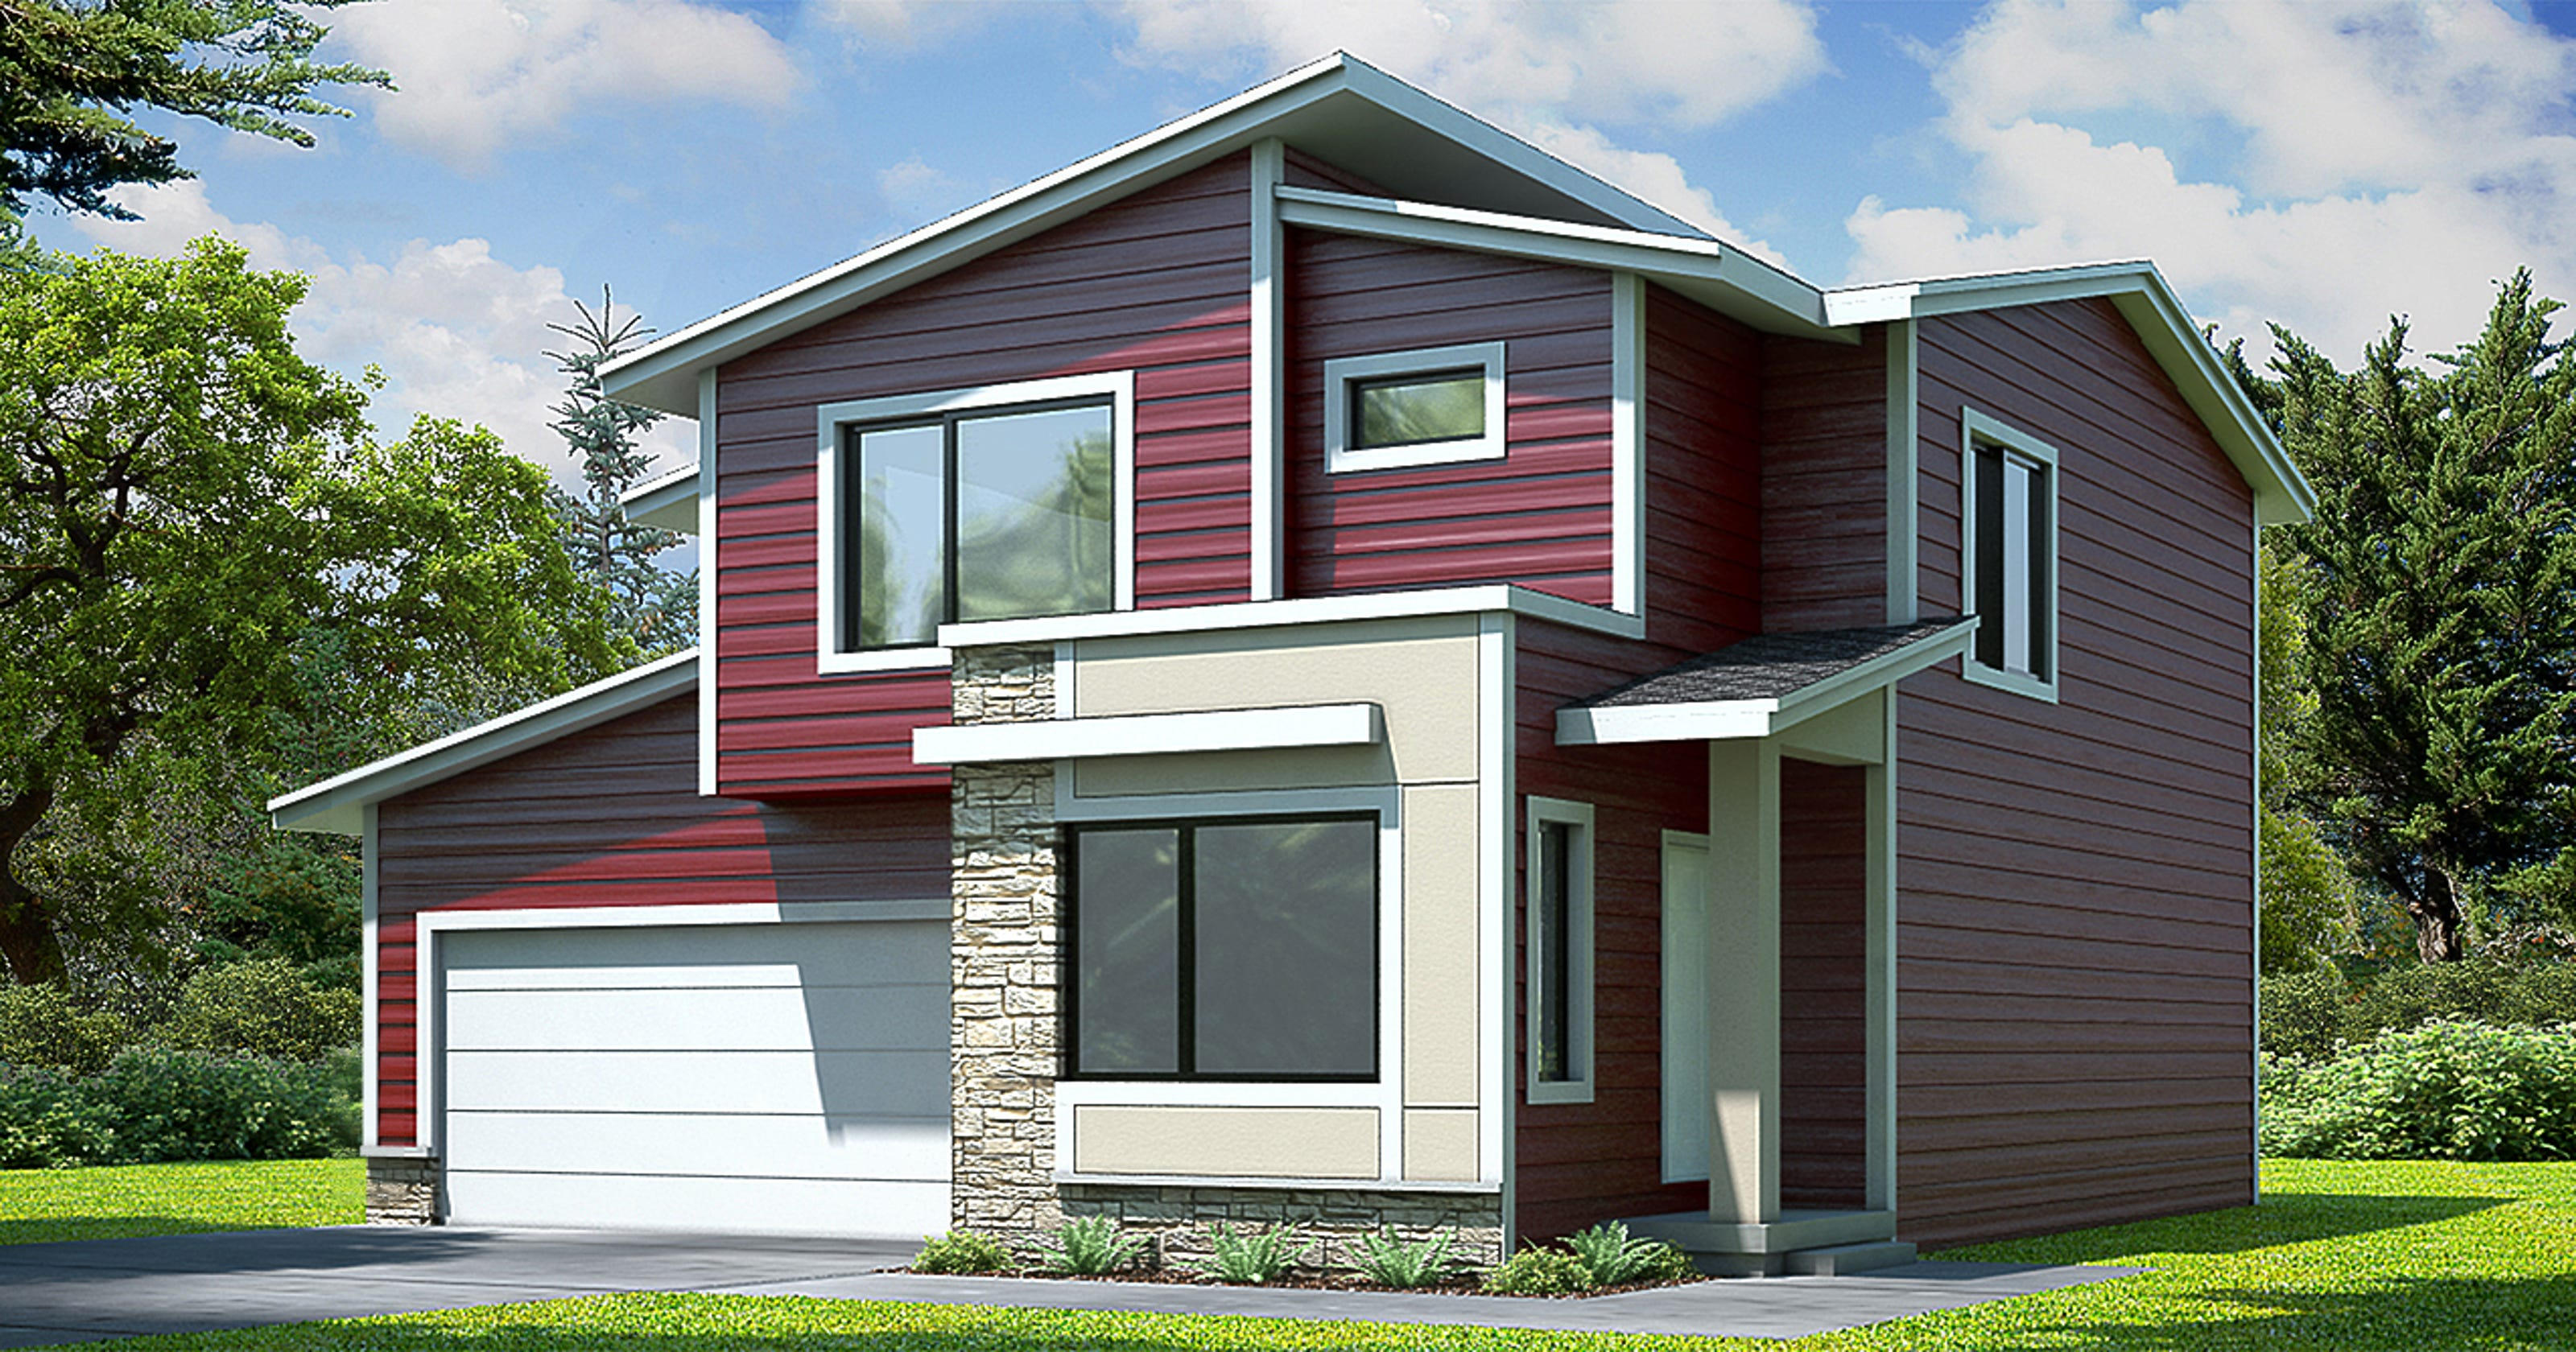 Destiny homes plans affordable houses starting at 200000 malvernweather Gallery